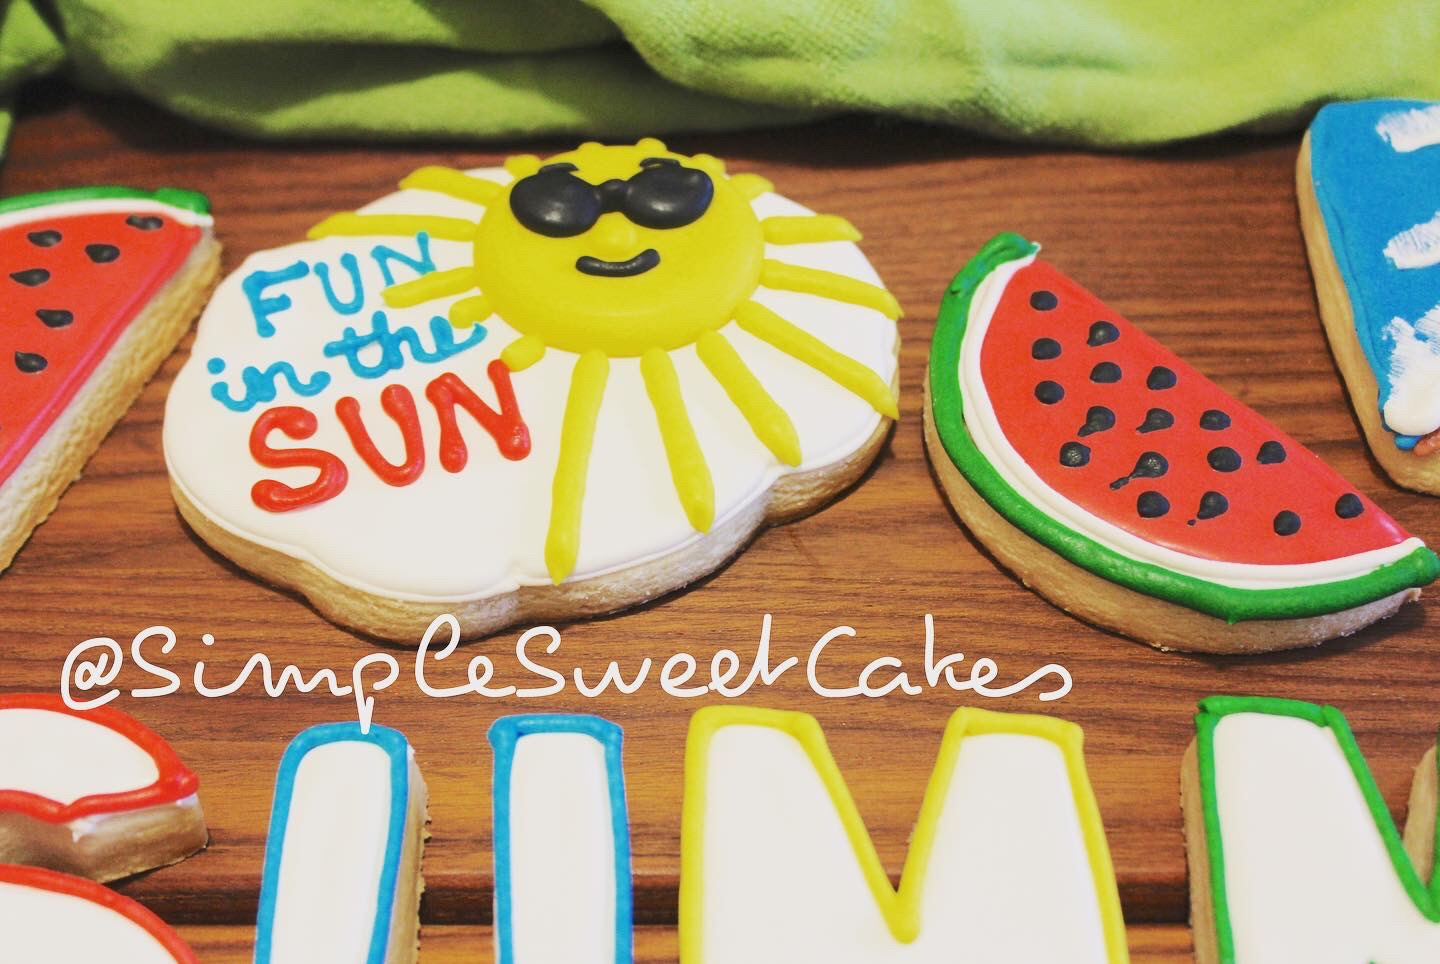 Decorated Sugar Cookie - Fun in the Sun